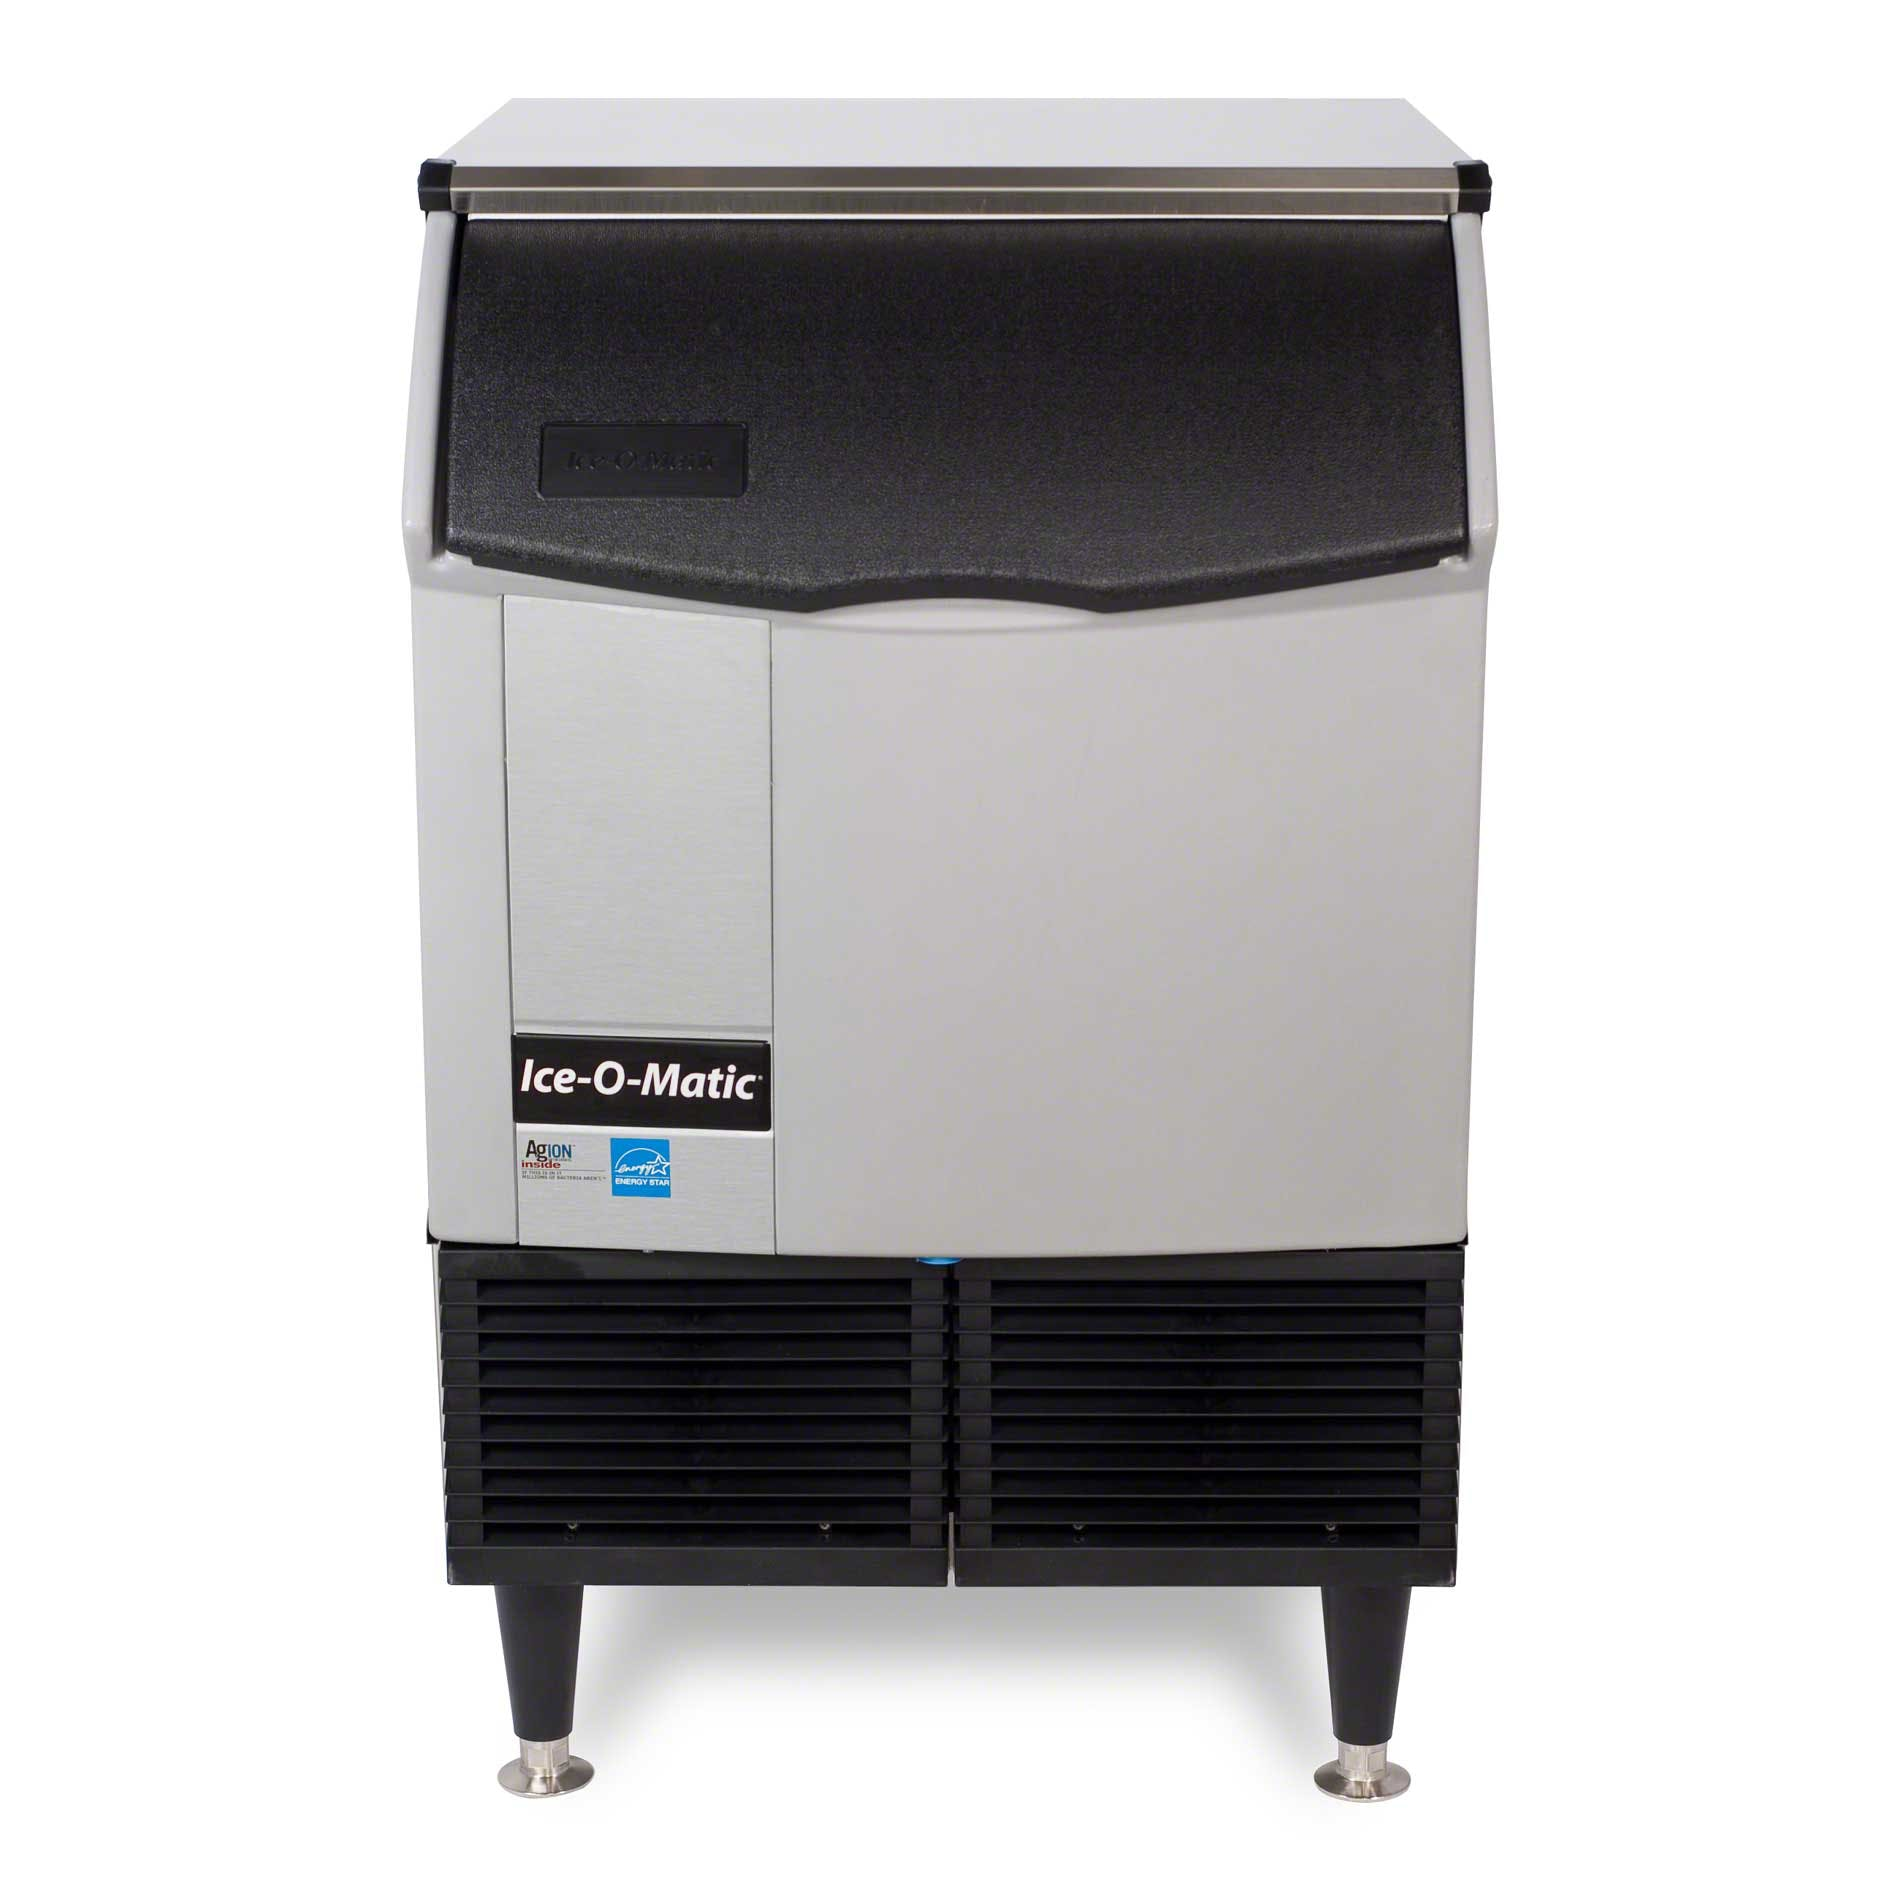 Ice-O-Matic - ICEU220FA 238 lb Self-Contained Full Cube Ice Machine Ice machine sold by Food Service Warehouse